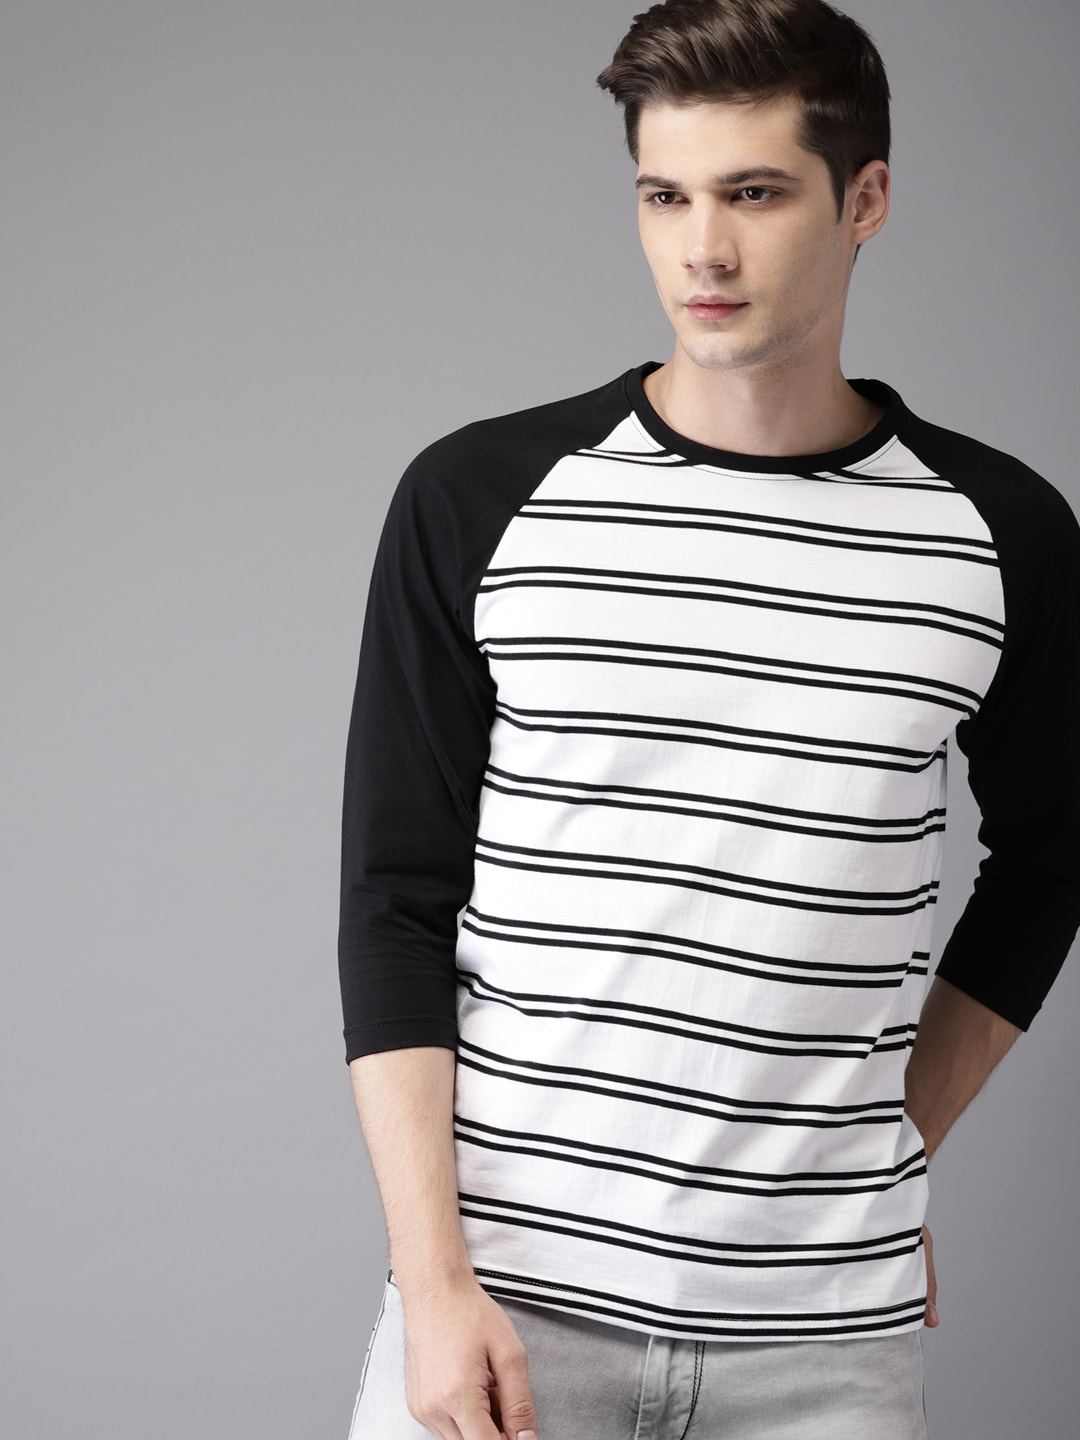 Buy HERE&NOW White Striped Round Neck Men's T-shirt At Best Price